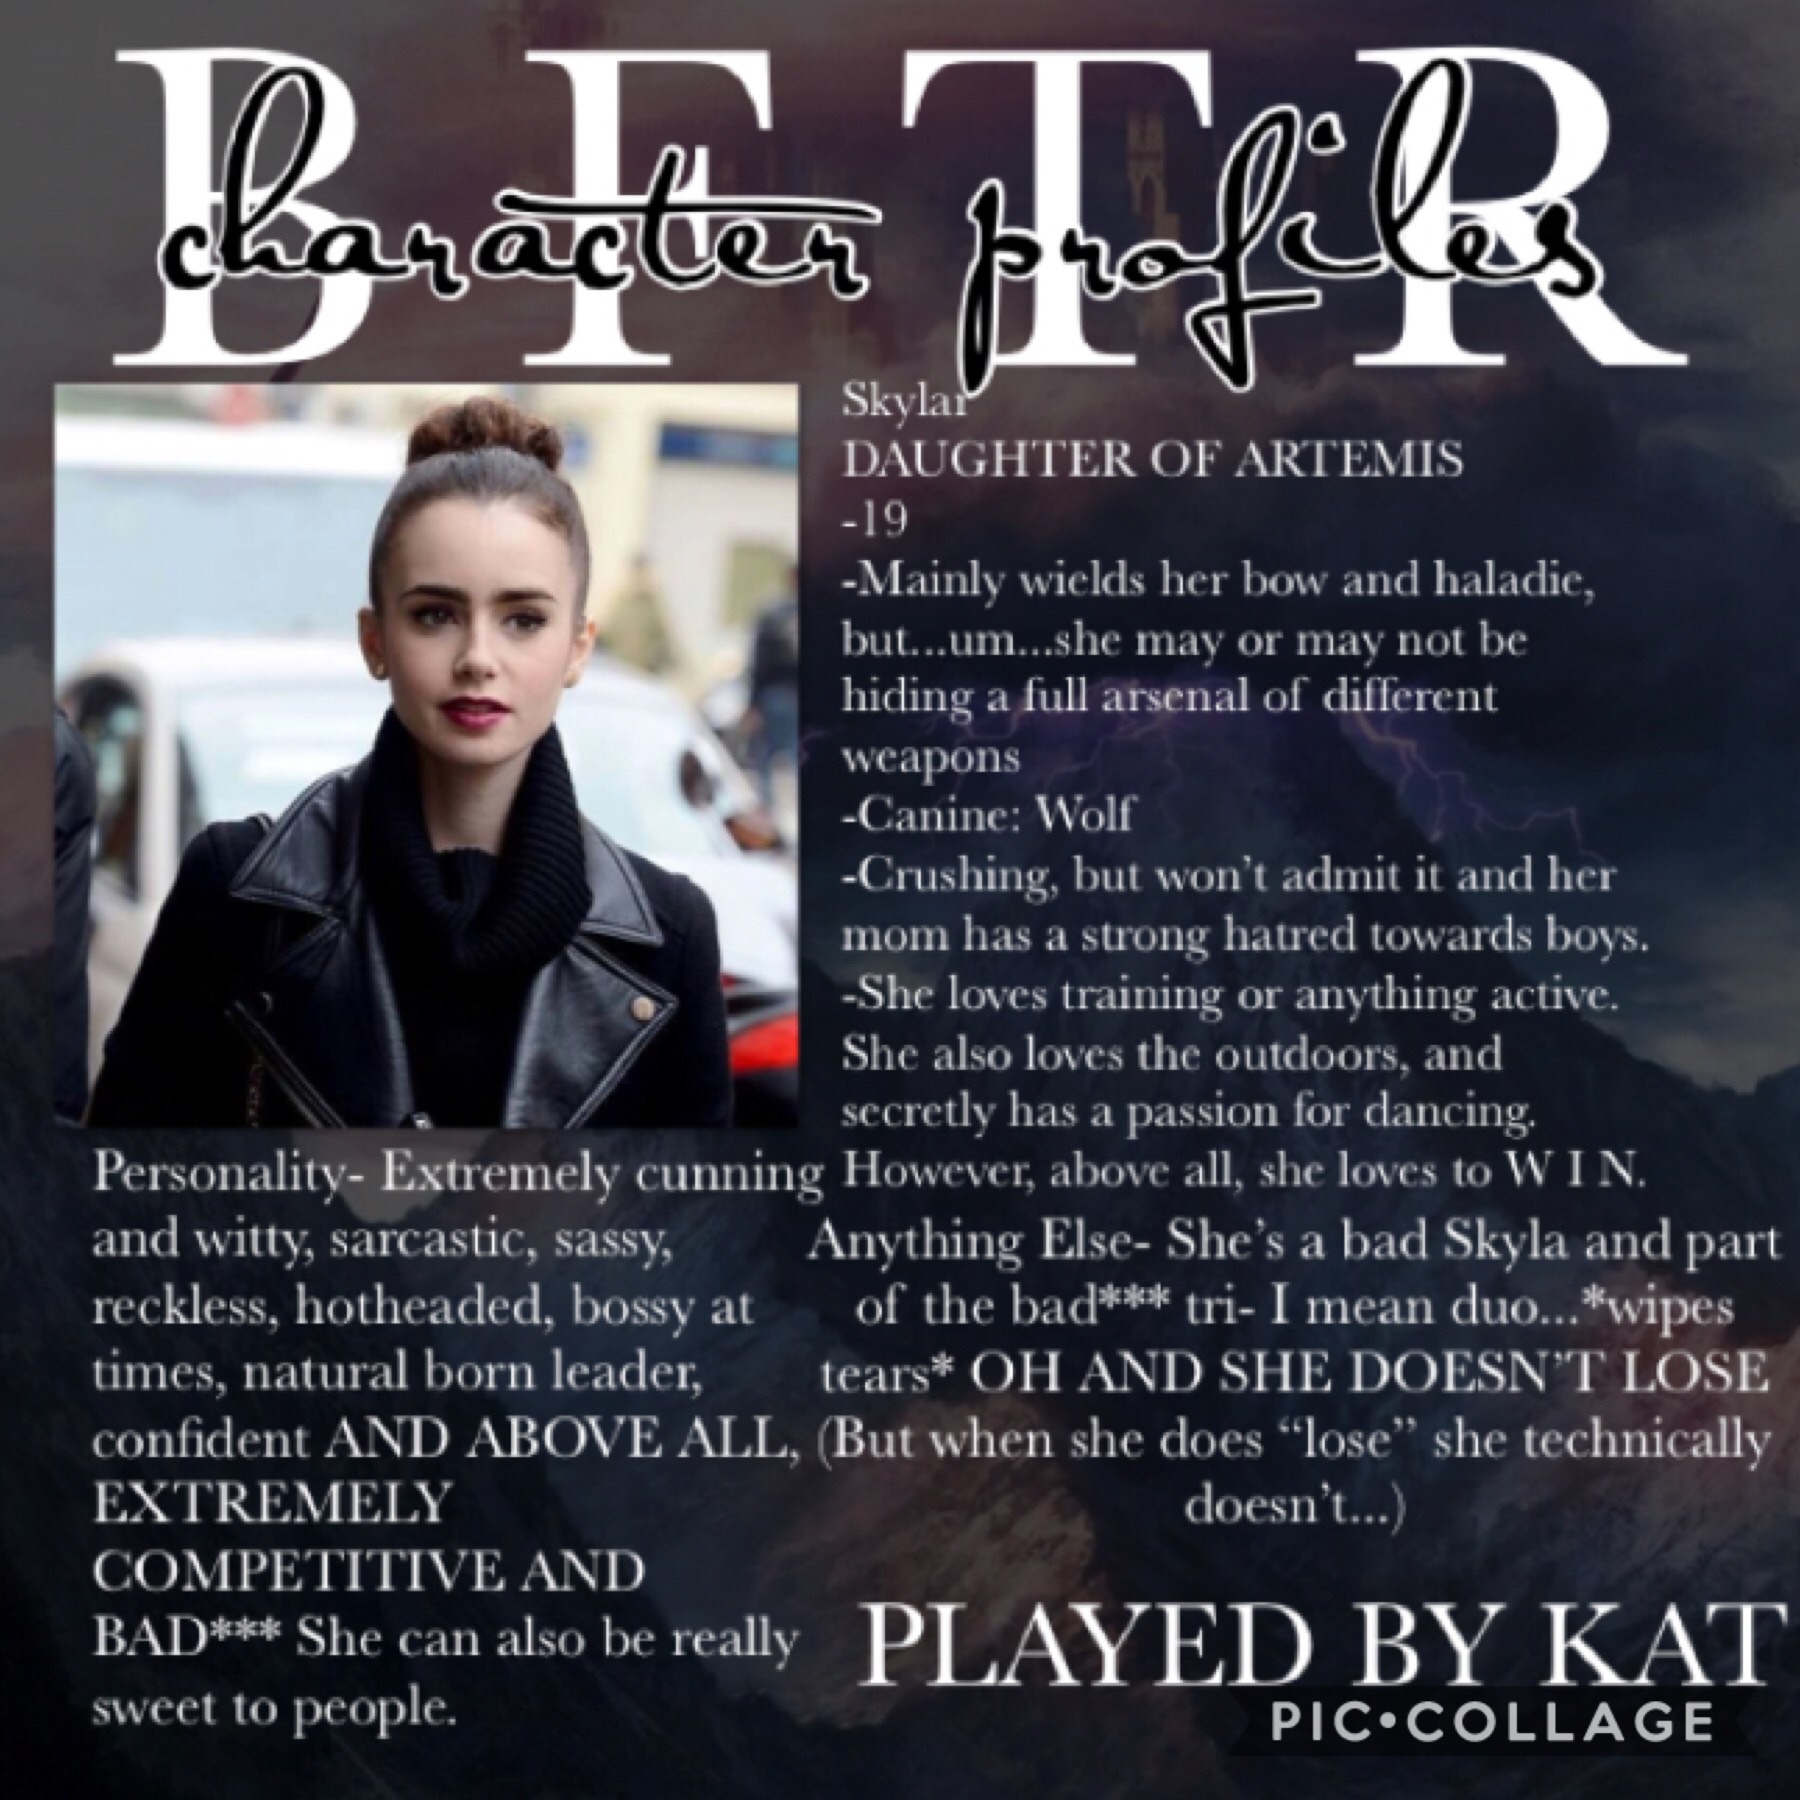 🖤PLAYED BY KAT🖤 If you manage to find this message, I just wanted to say, I PROMISE THERE ARE MORE GUYS